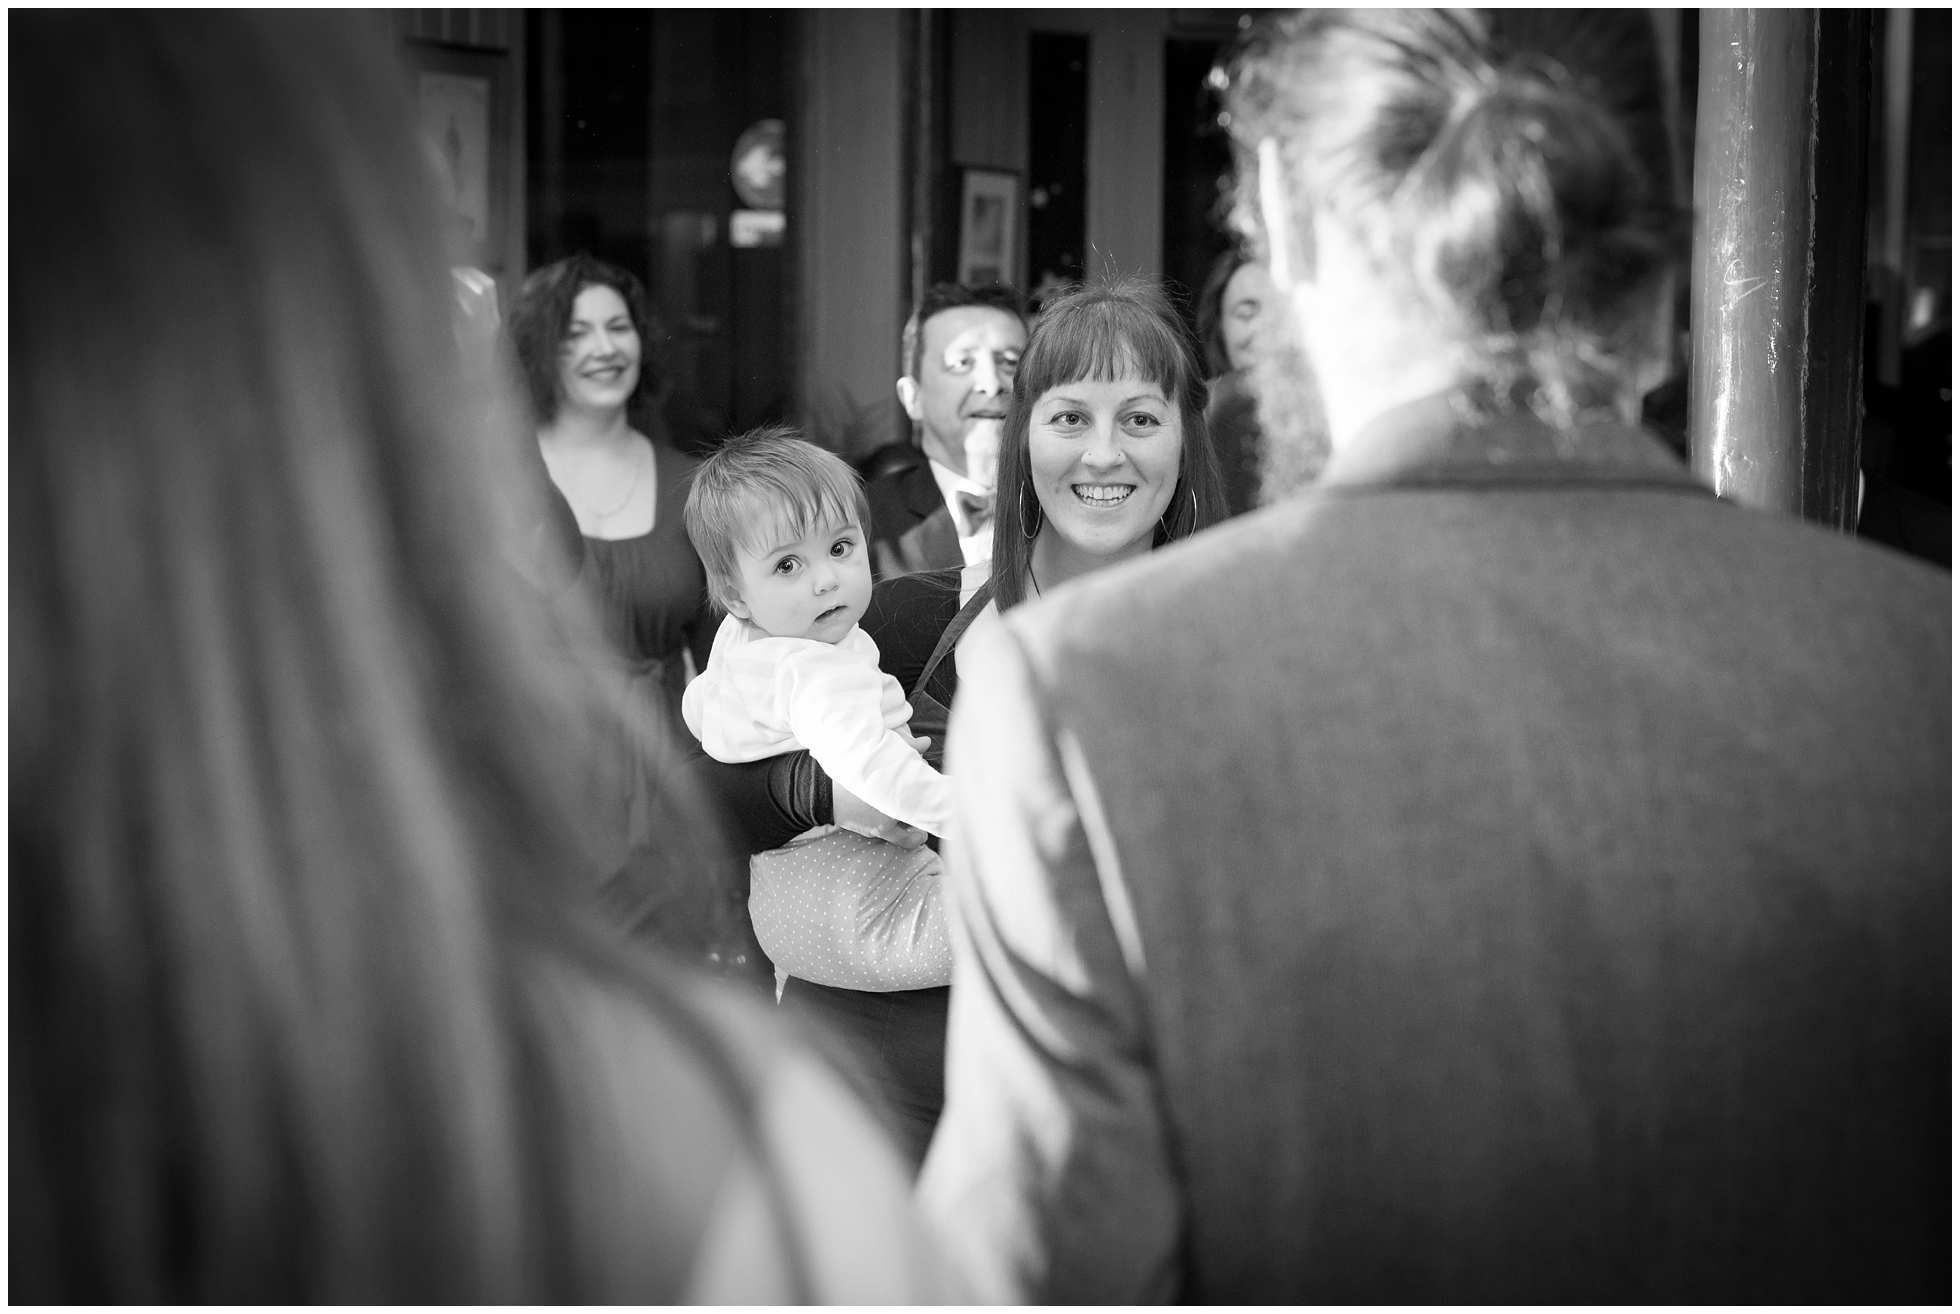 black and white shot of mum and baby at wedding near archway